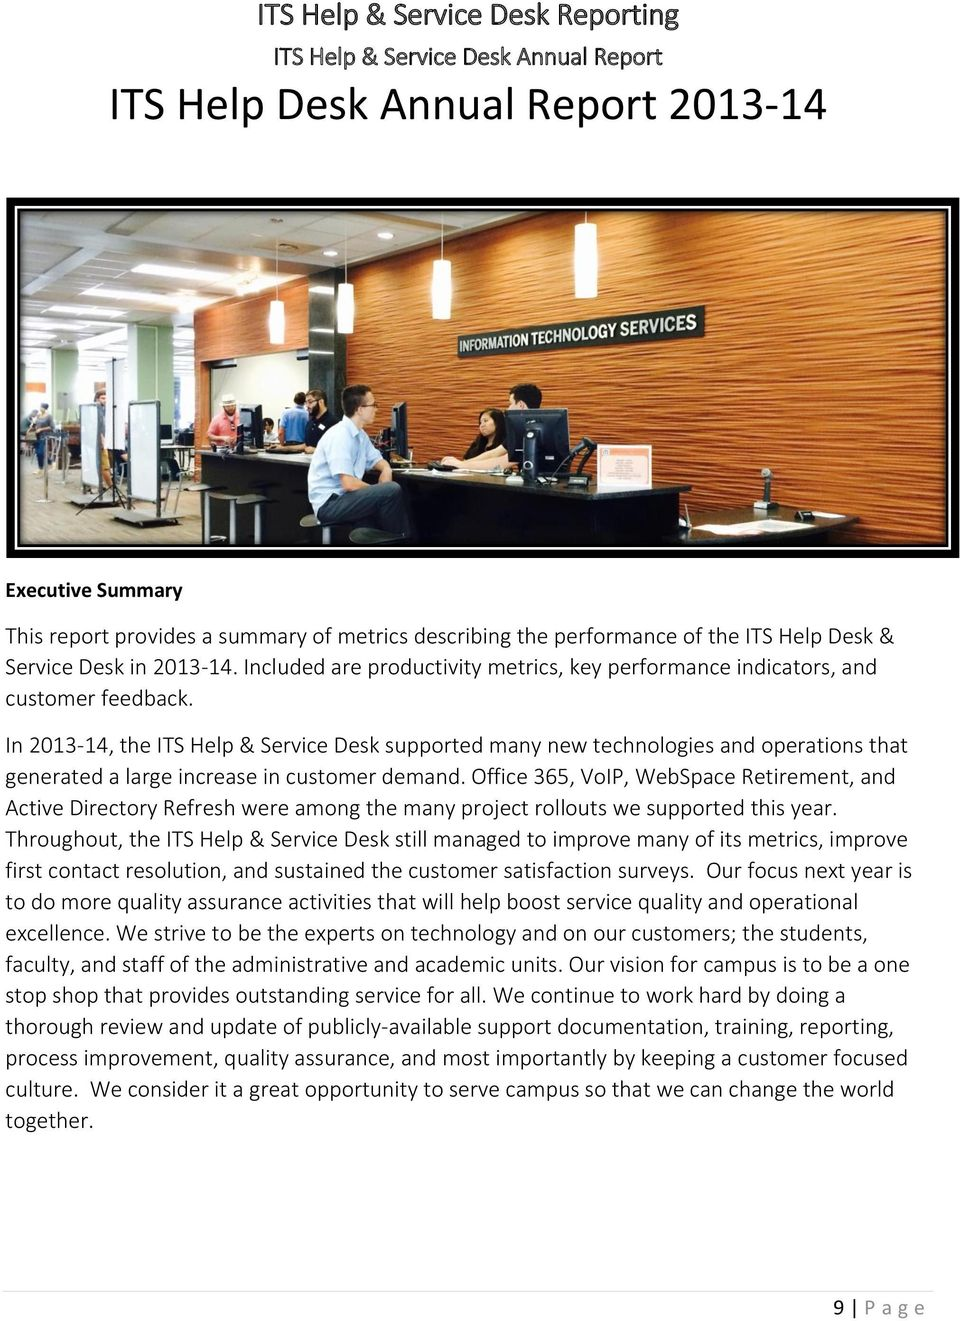 In 2013-14, the ITS Help & Service Desk supported many new technologies and operations that generated a large increase in customer demand.